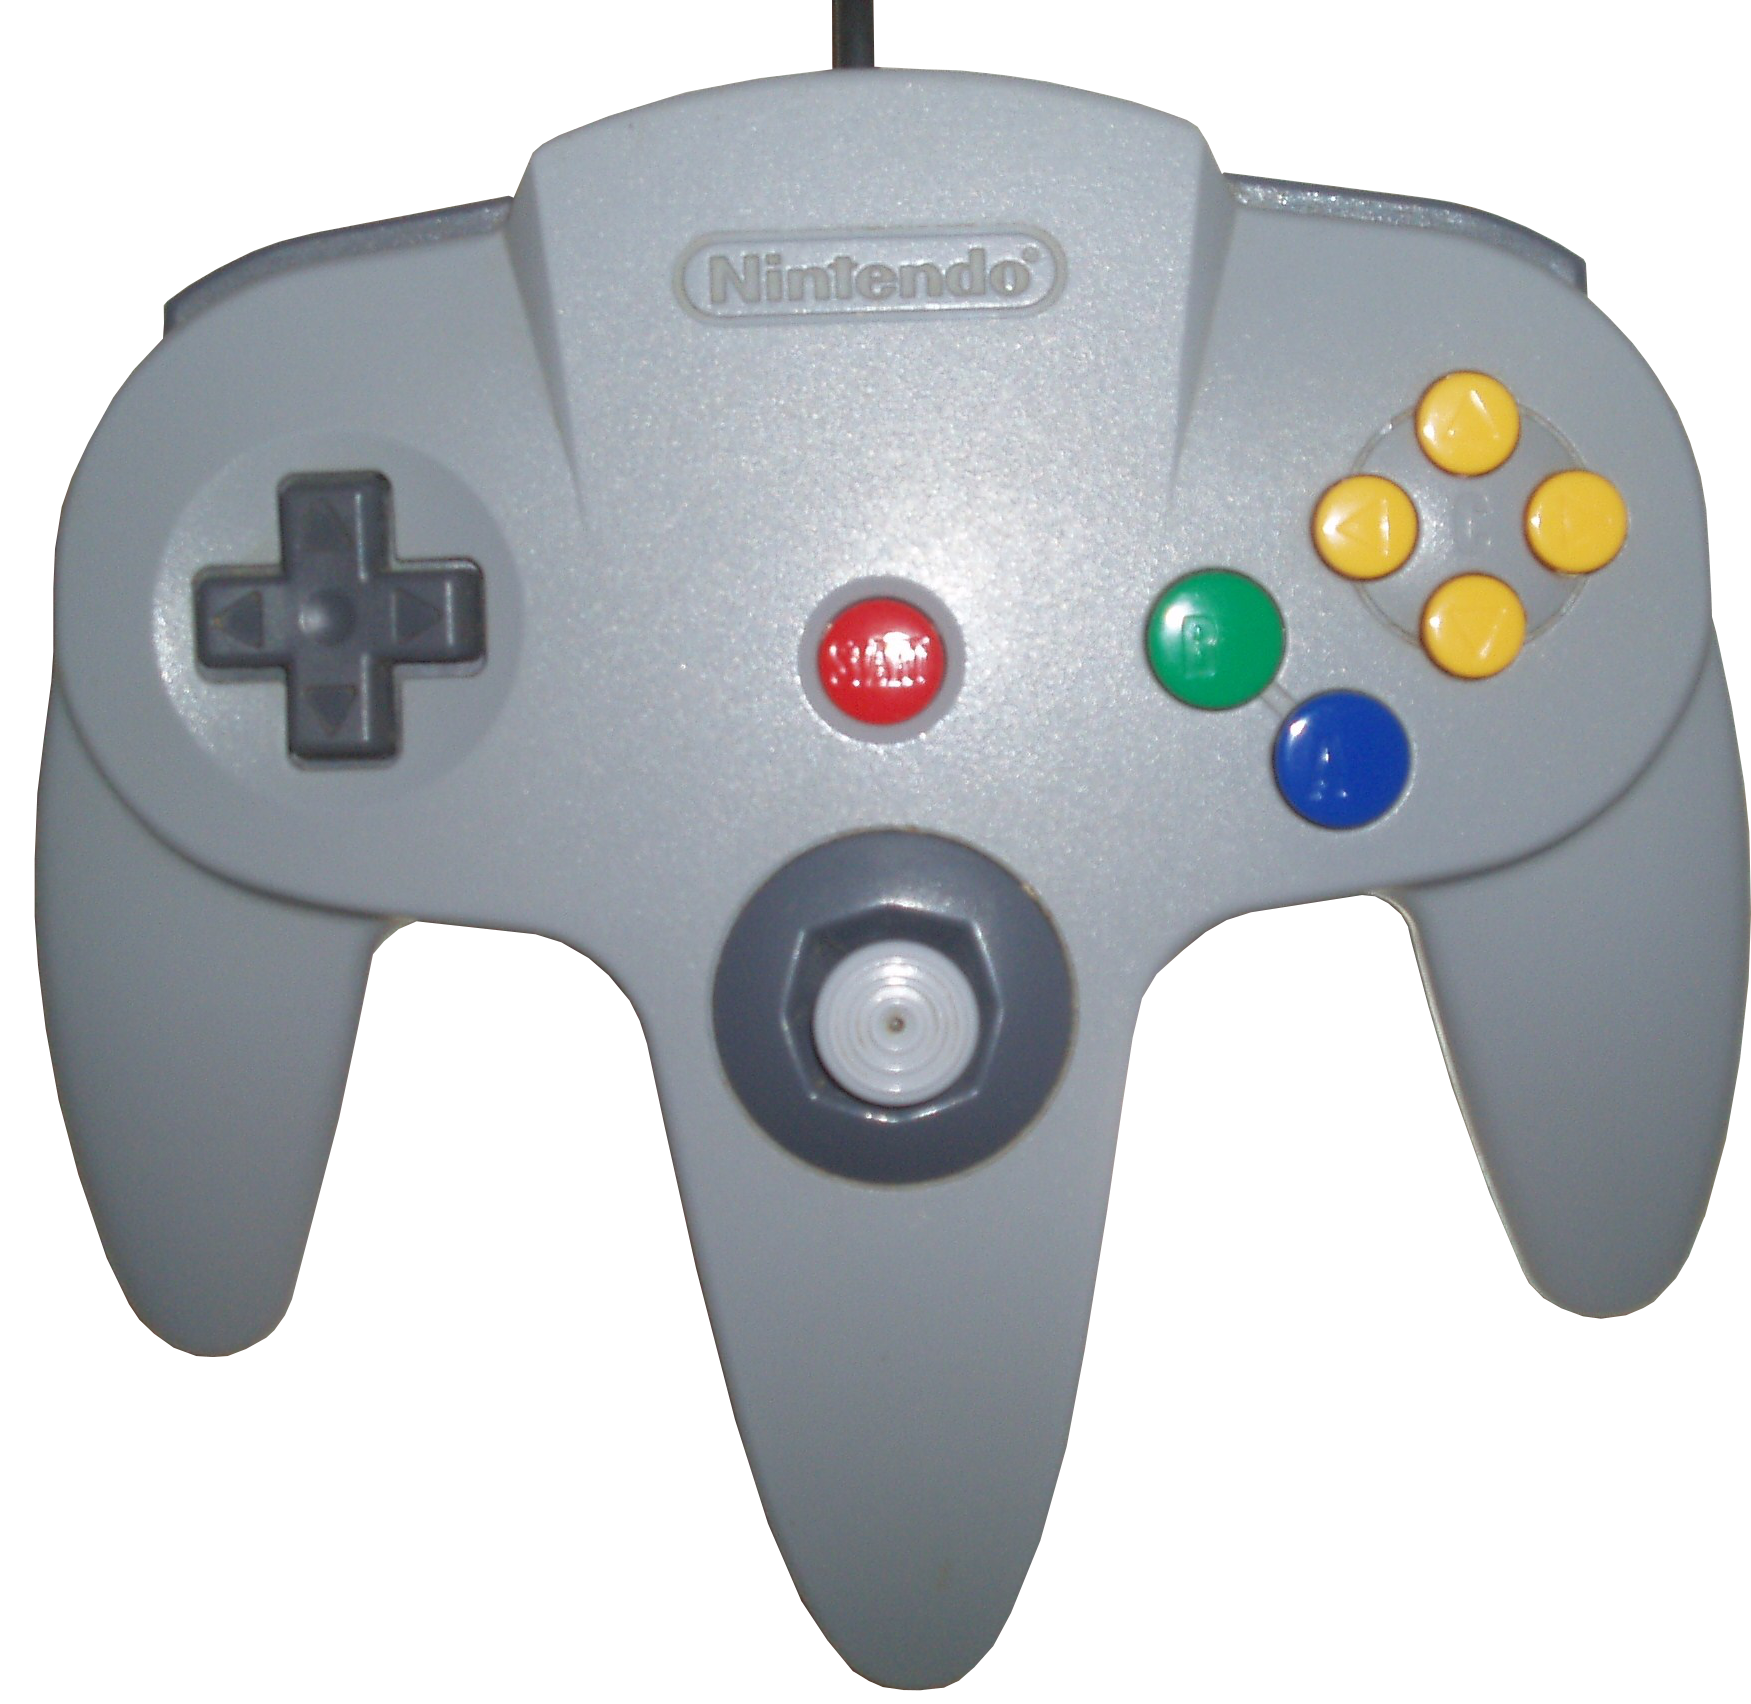 Gaming clipart n64 controller. Vr retro games